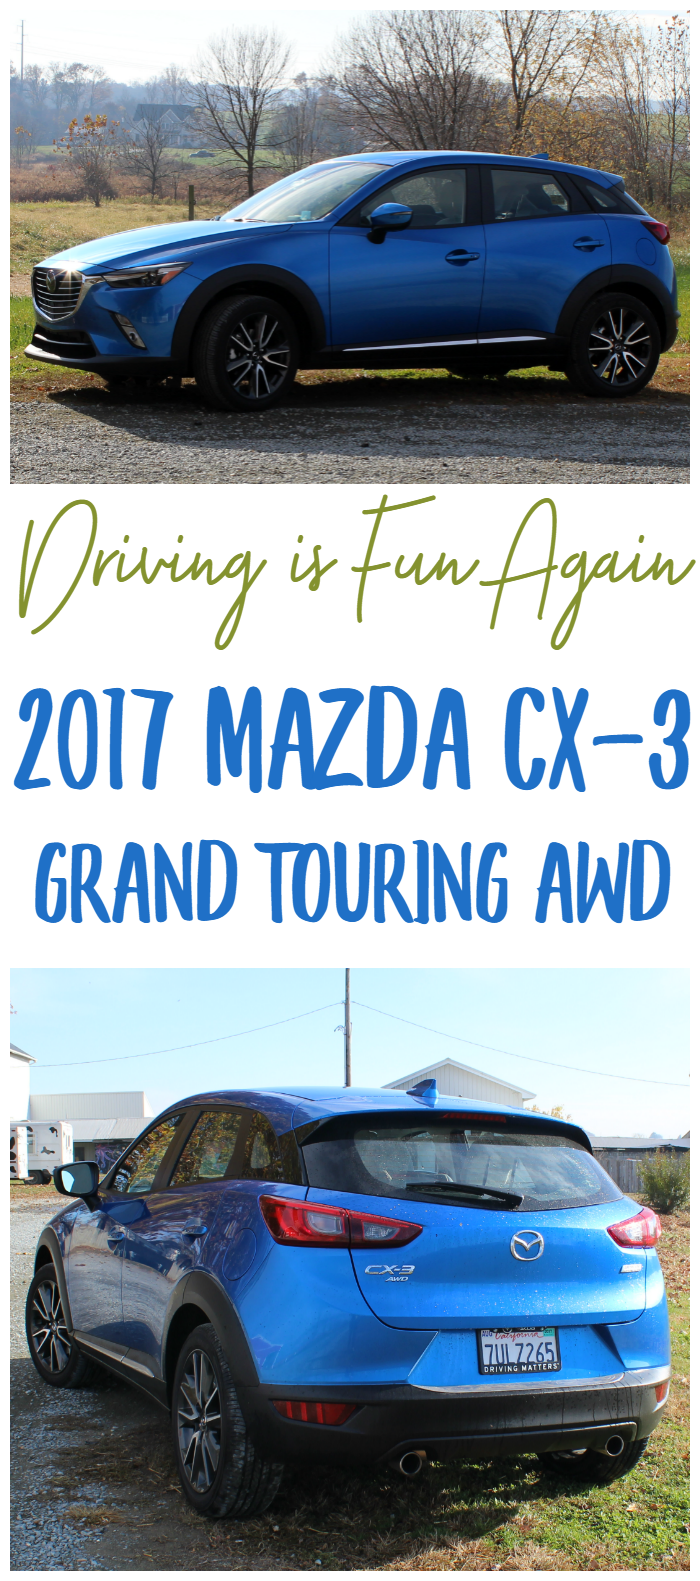 This mom gives her real-life thoughts on the 2017 Mazda CX-3 Grand Touring AWD.